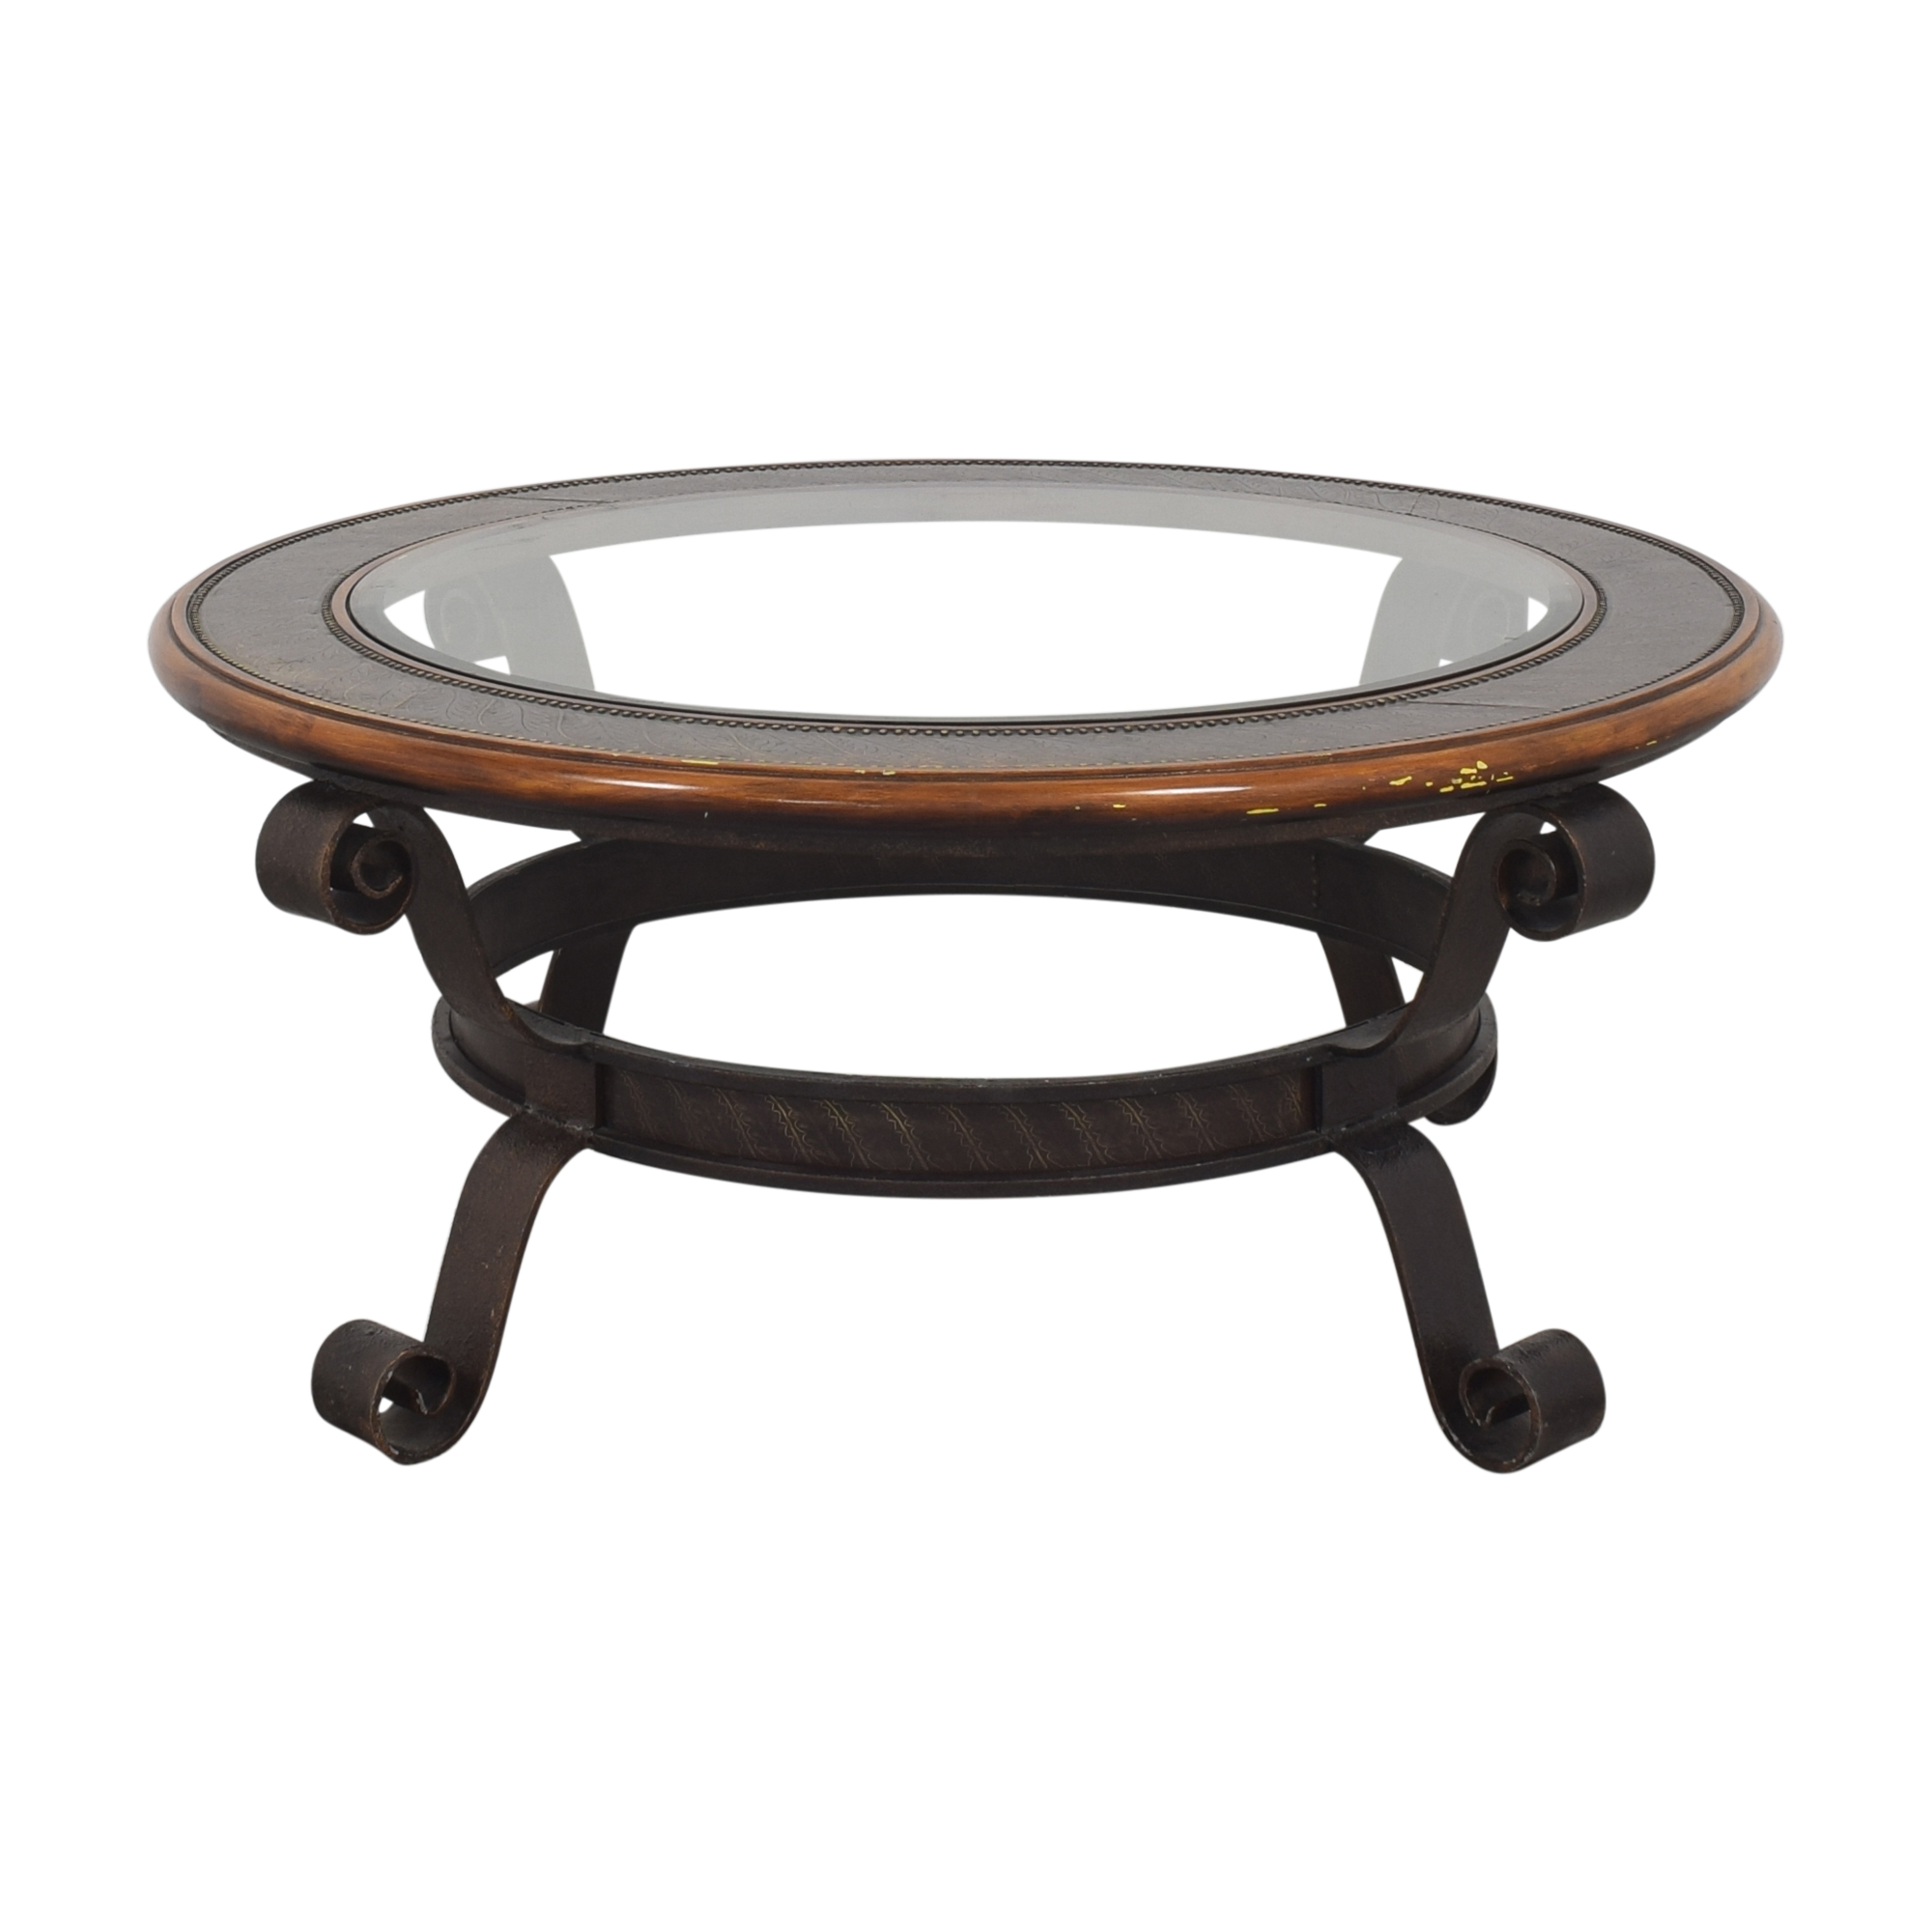 Maitland Smith Round Coffee Table sale